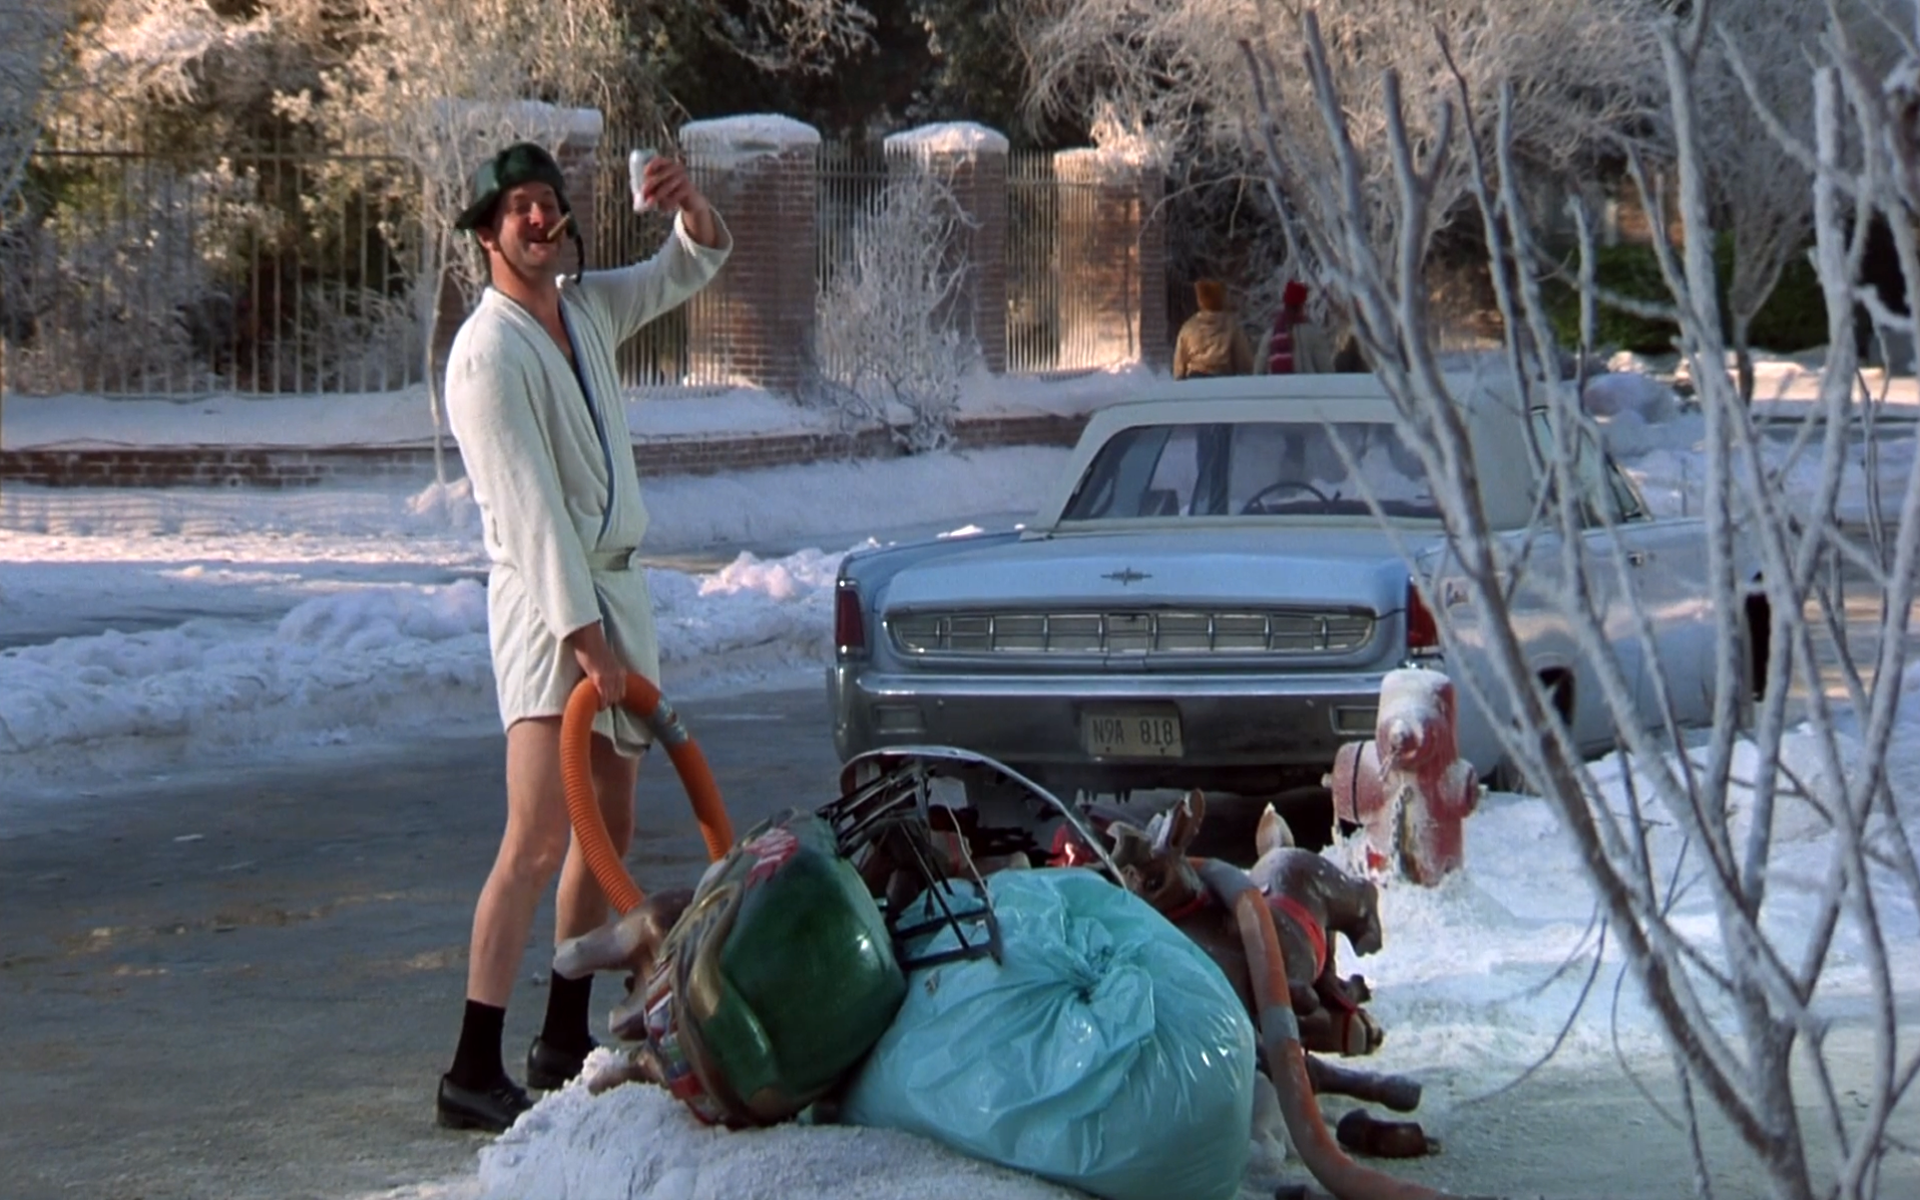 HQ National Lampoon's Christmas Vacation Wallpapers | File 5321.48Kb